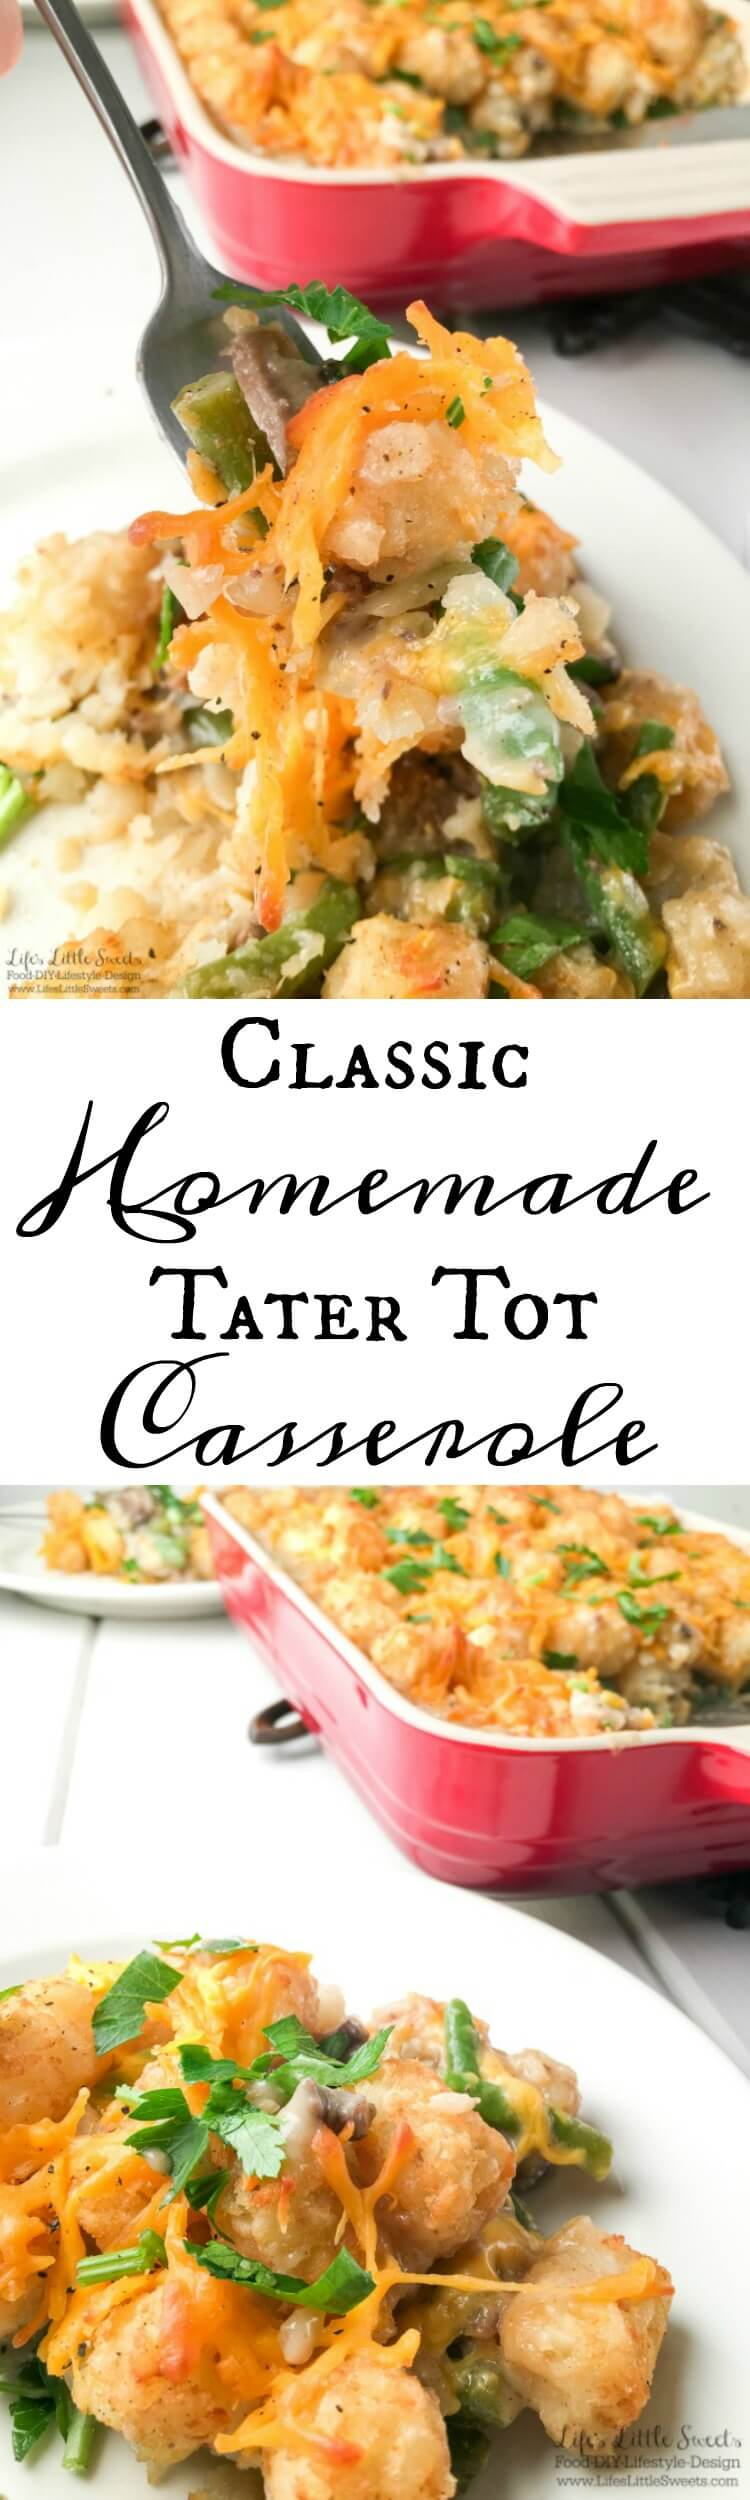 This Classic Homemade Tater Tot Casserole is made from scratch without the use of canned soup. It's creamy, comforting and a delicious, one-dish dinner, sure to be a family favorite!